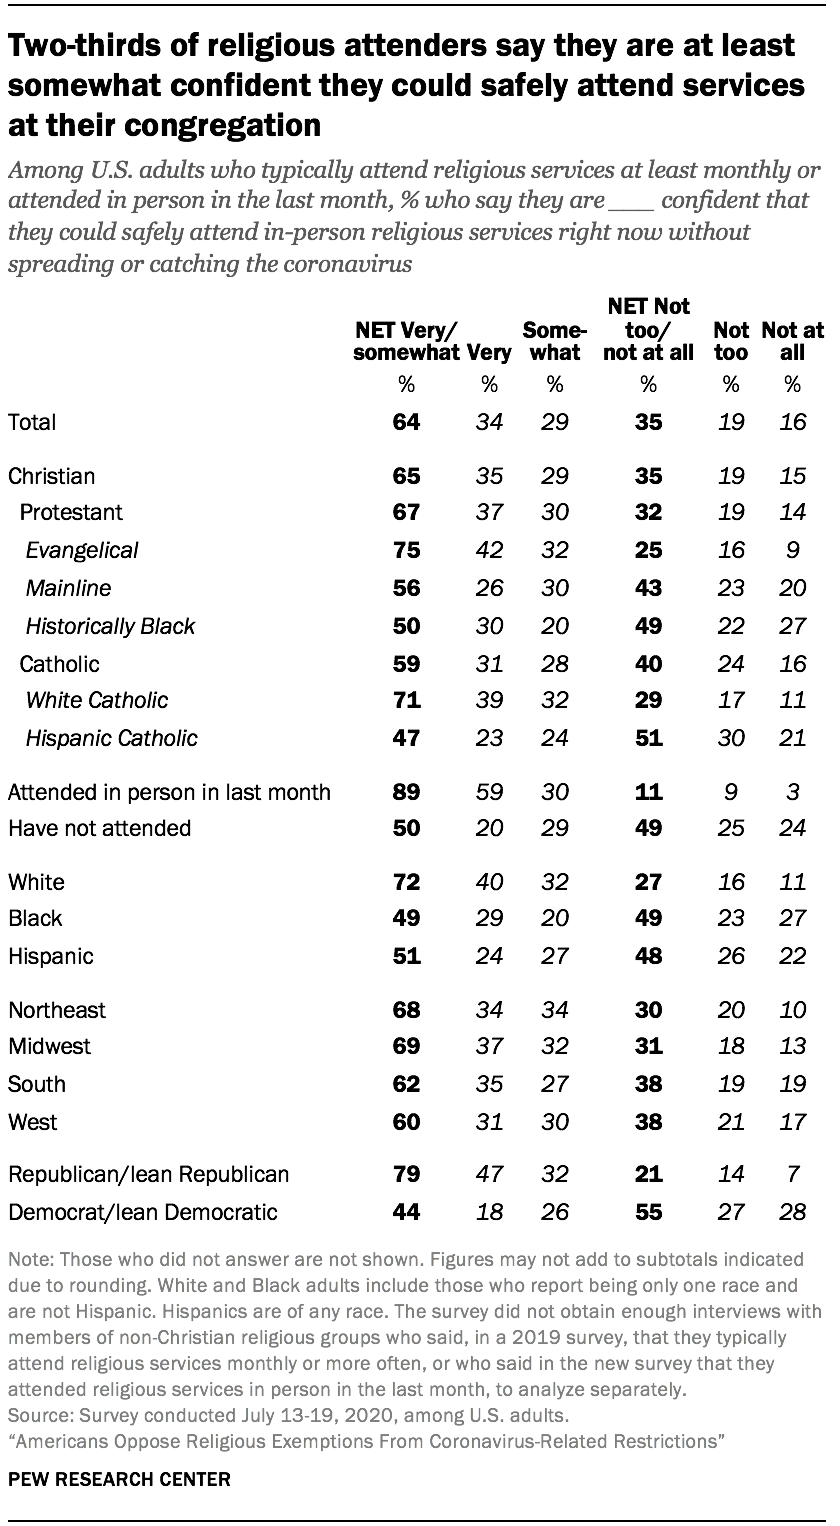 Two-thirds of religious attenders say they are at least somewhat confident they could safely attend services at their congregation